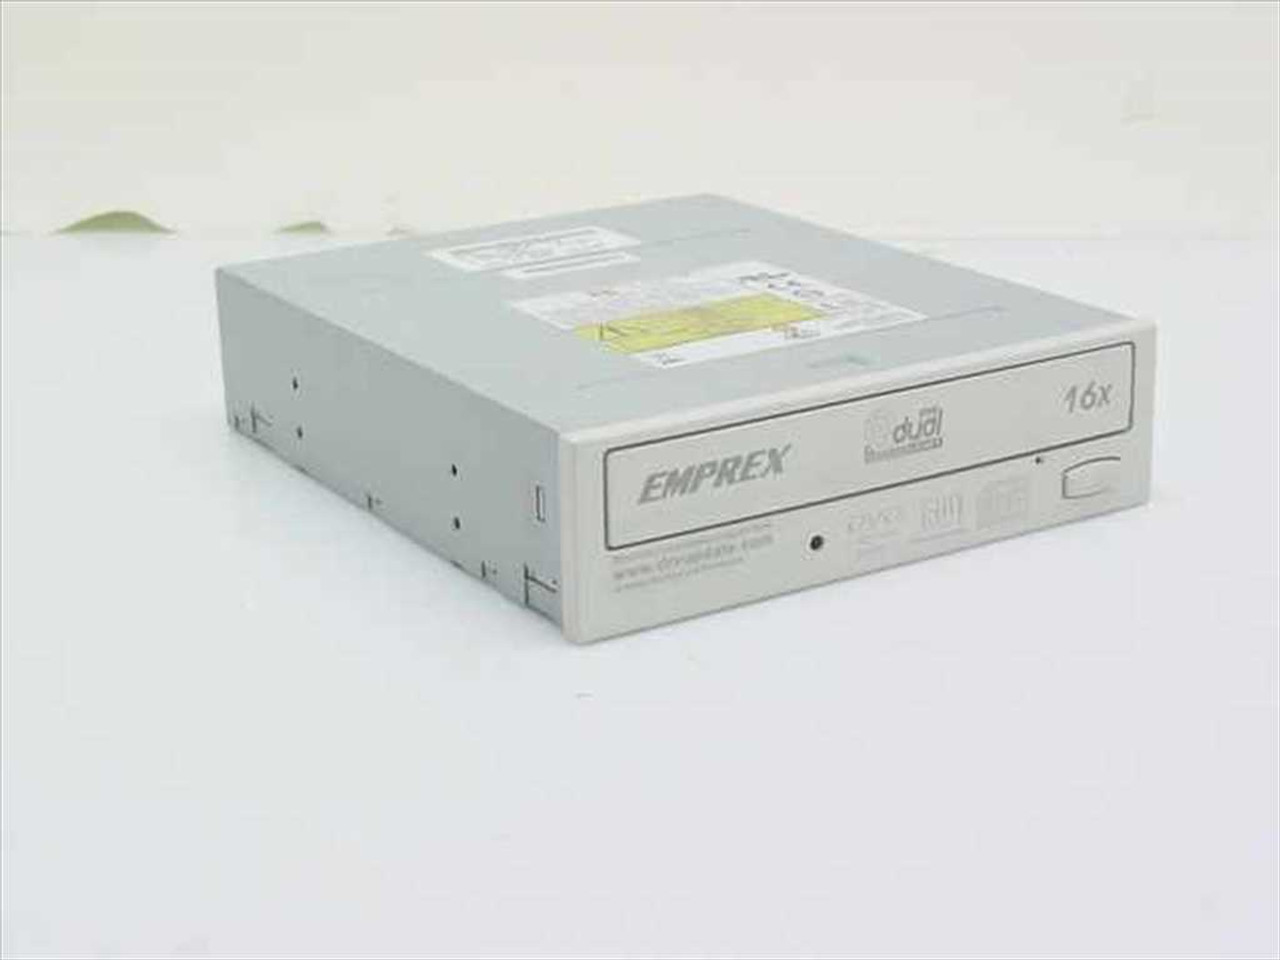 EMPREX DVD DUAL 8X WINDOWS 10 DRIVER